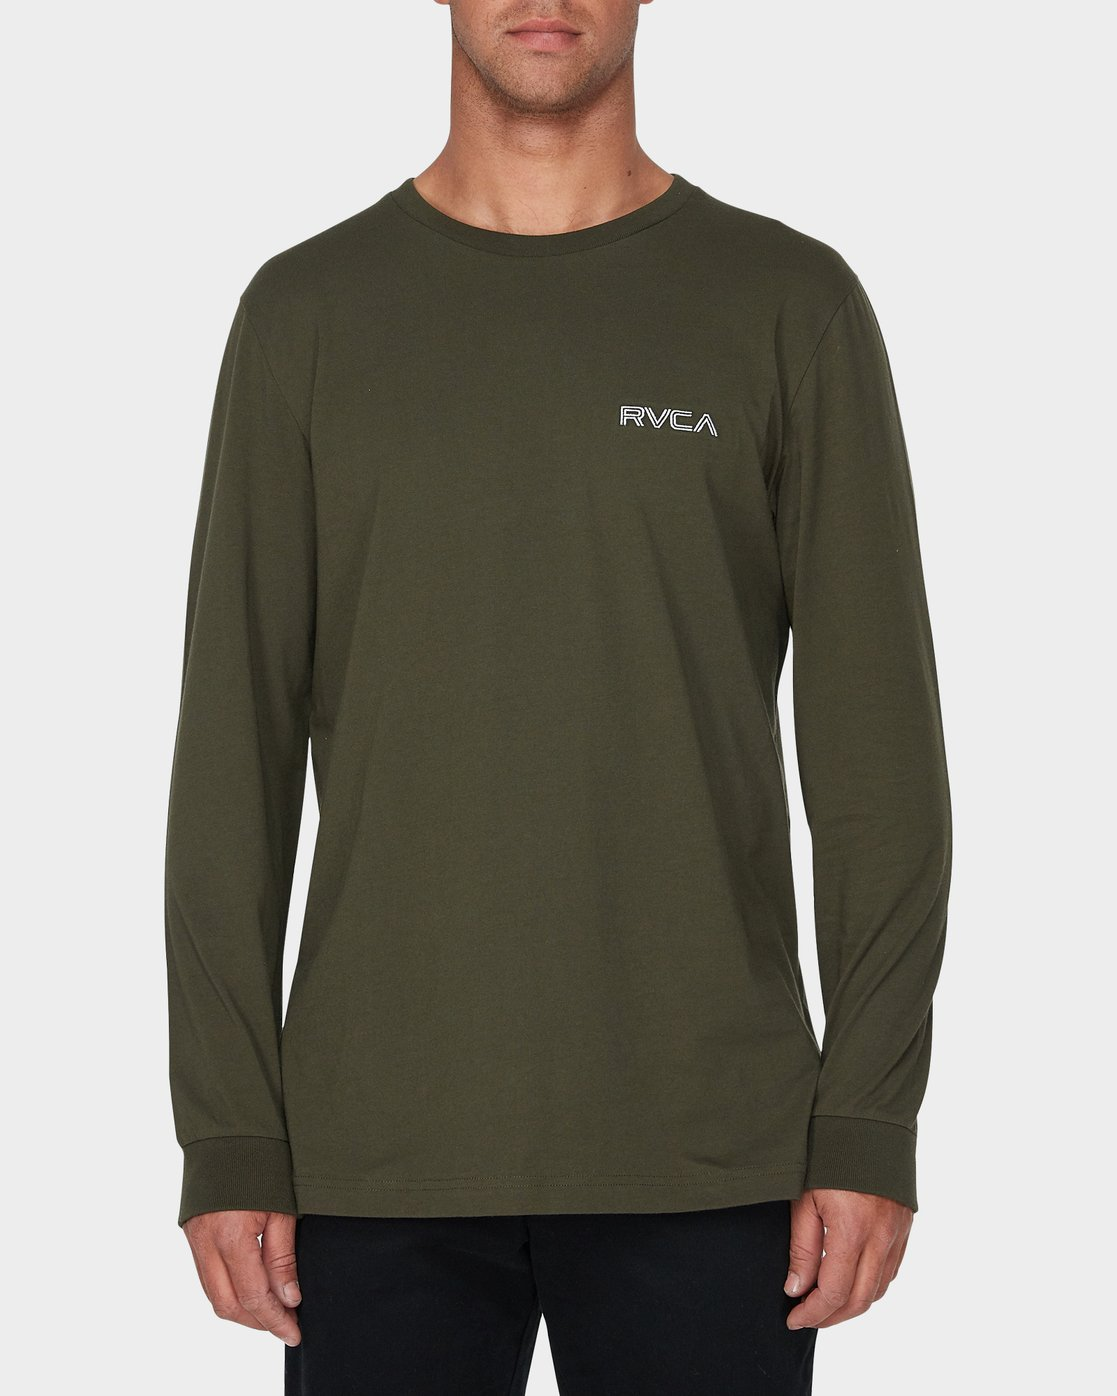 0 RVCA Keyliner Long Sleeve T-Shirt  R193094 RVCA